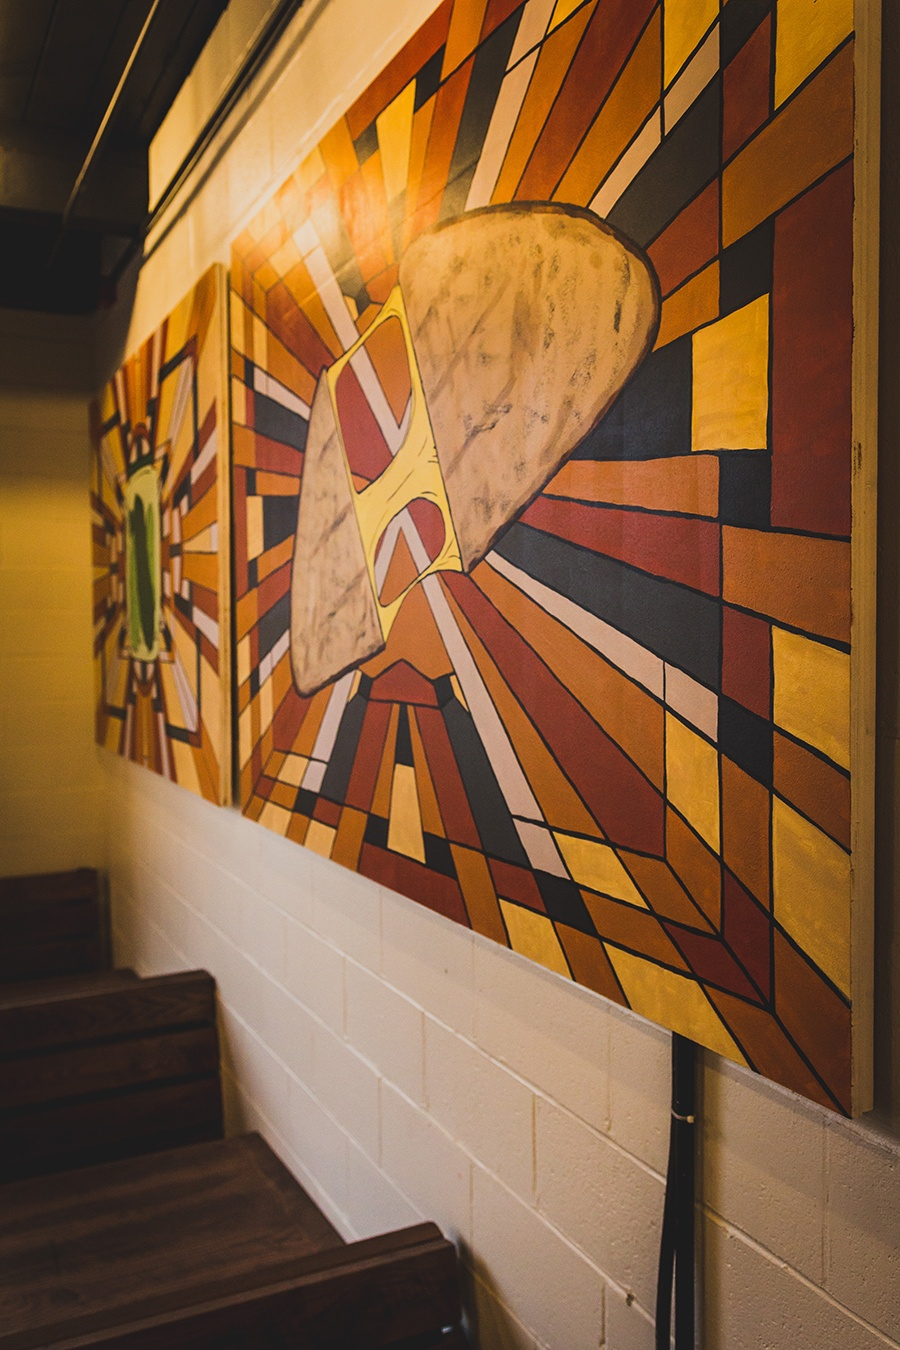 The grilled cheese mural at Brato Brewhouse + Kitchen